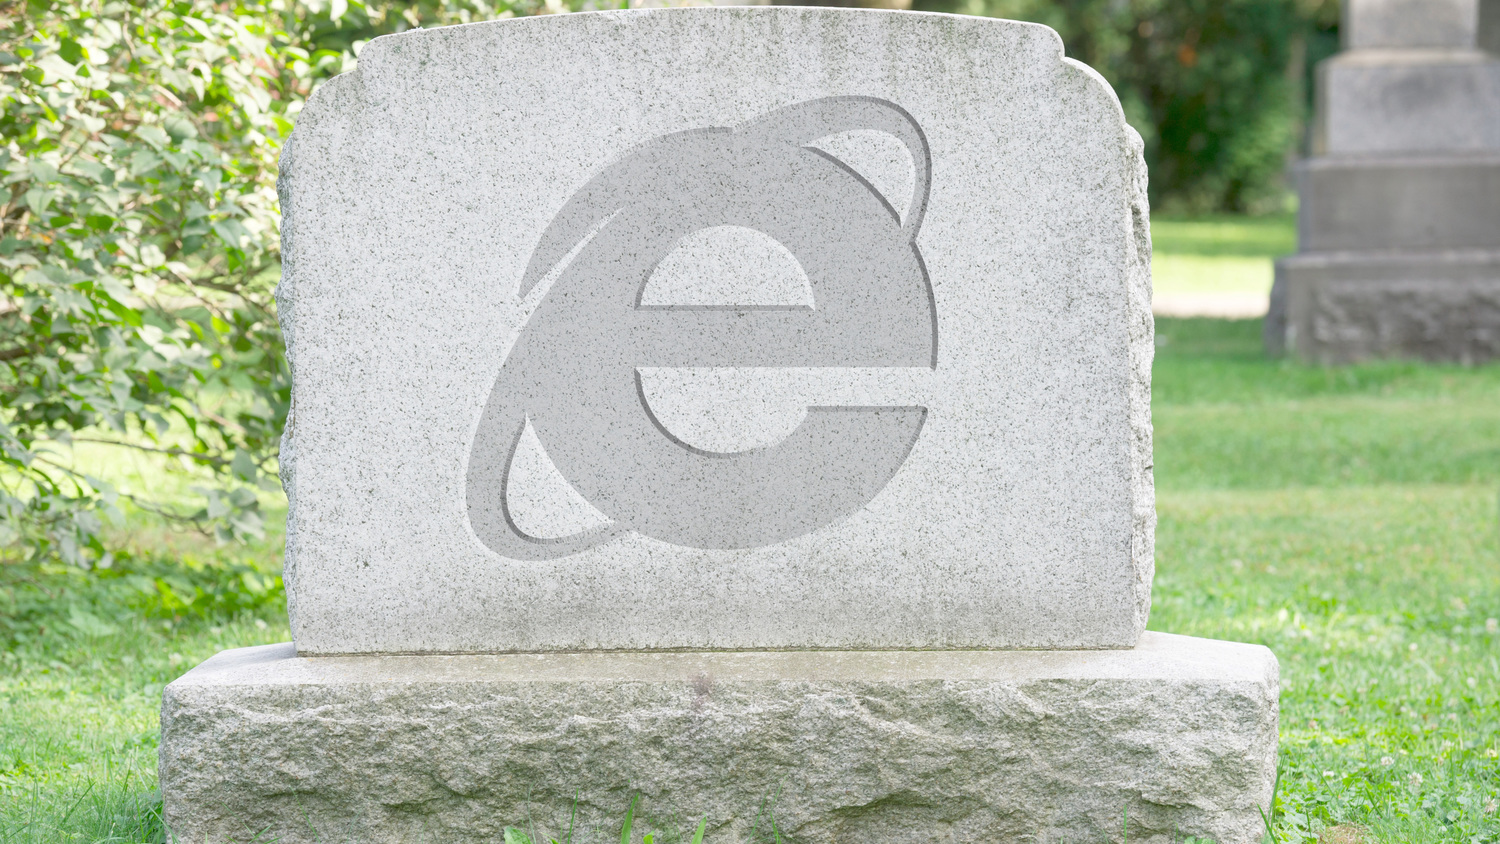 The Retirement of Internet Explorer